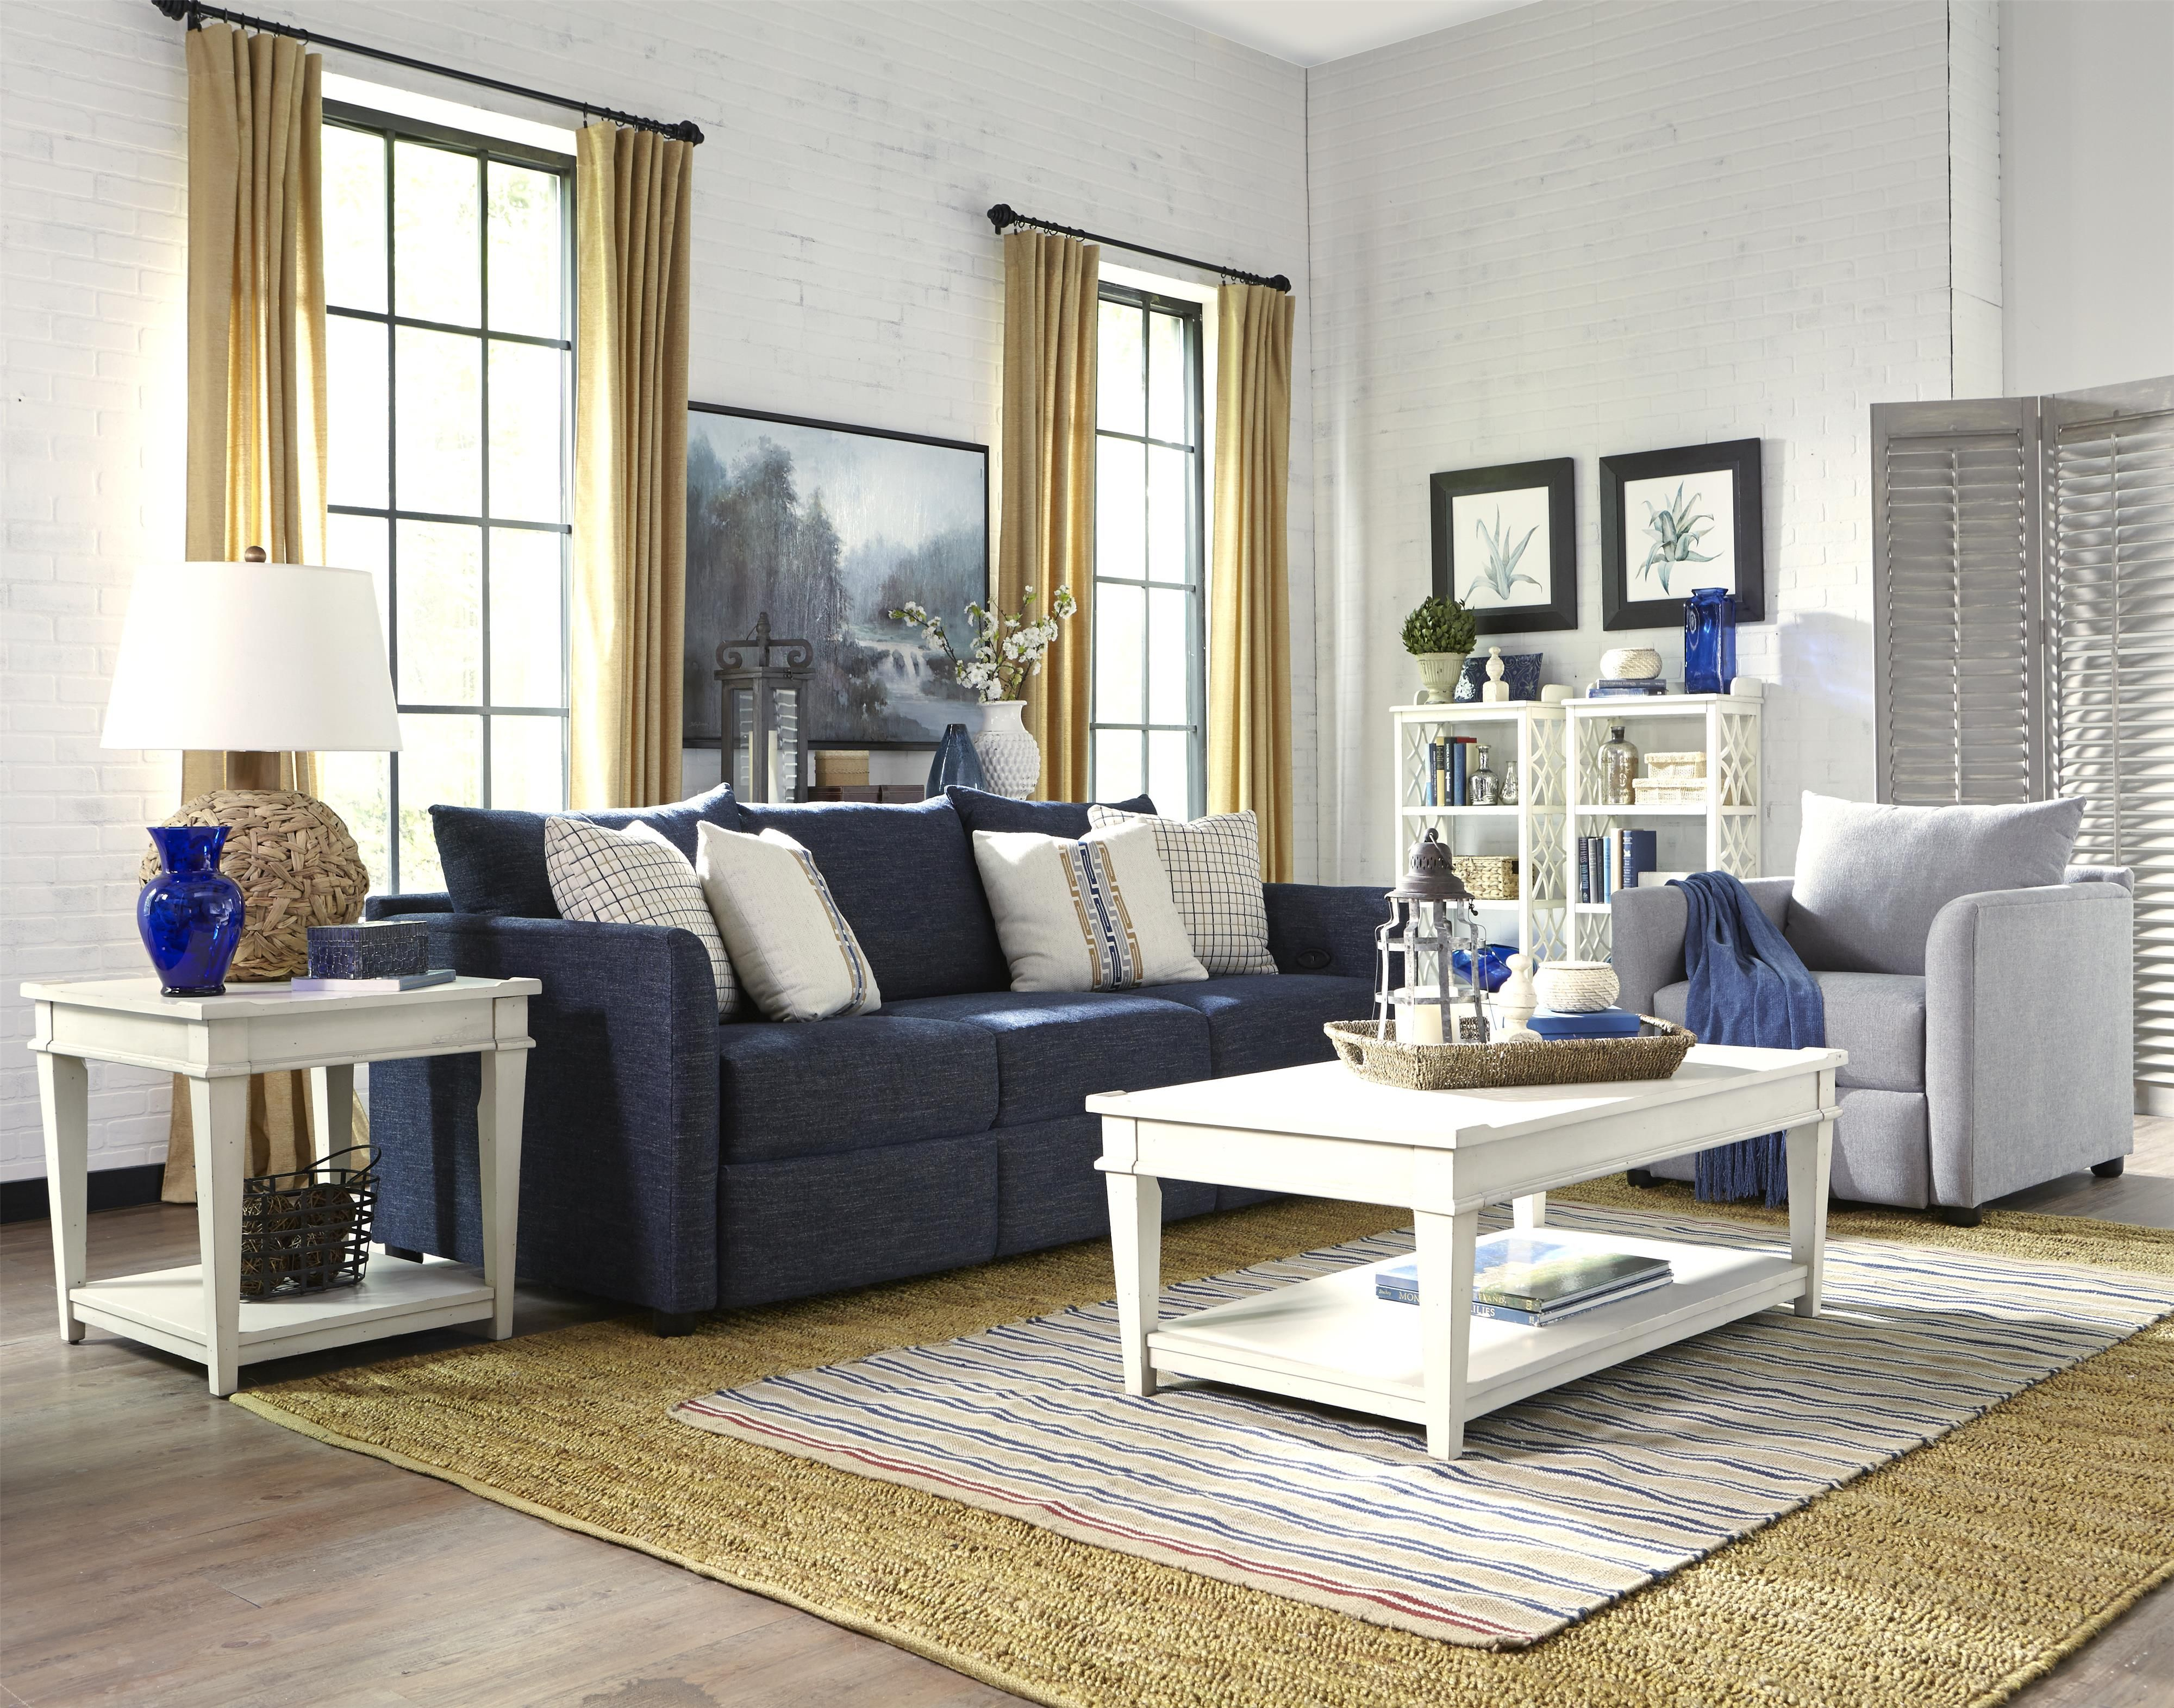 Shop For The Trisha Yearwood Home Collection By Klaussner Atlanta Reclining  Living Room Group At Hudsonu0027s Furniture   Your Tampa, St Petersburg,  Orlando, ...